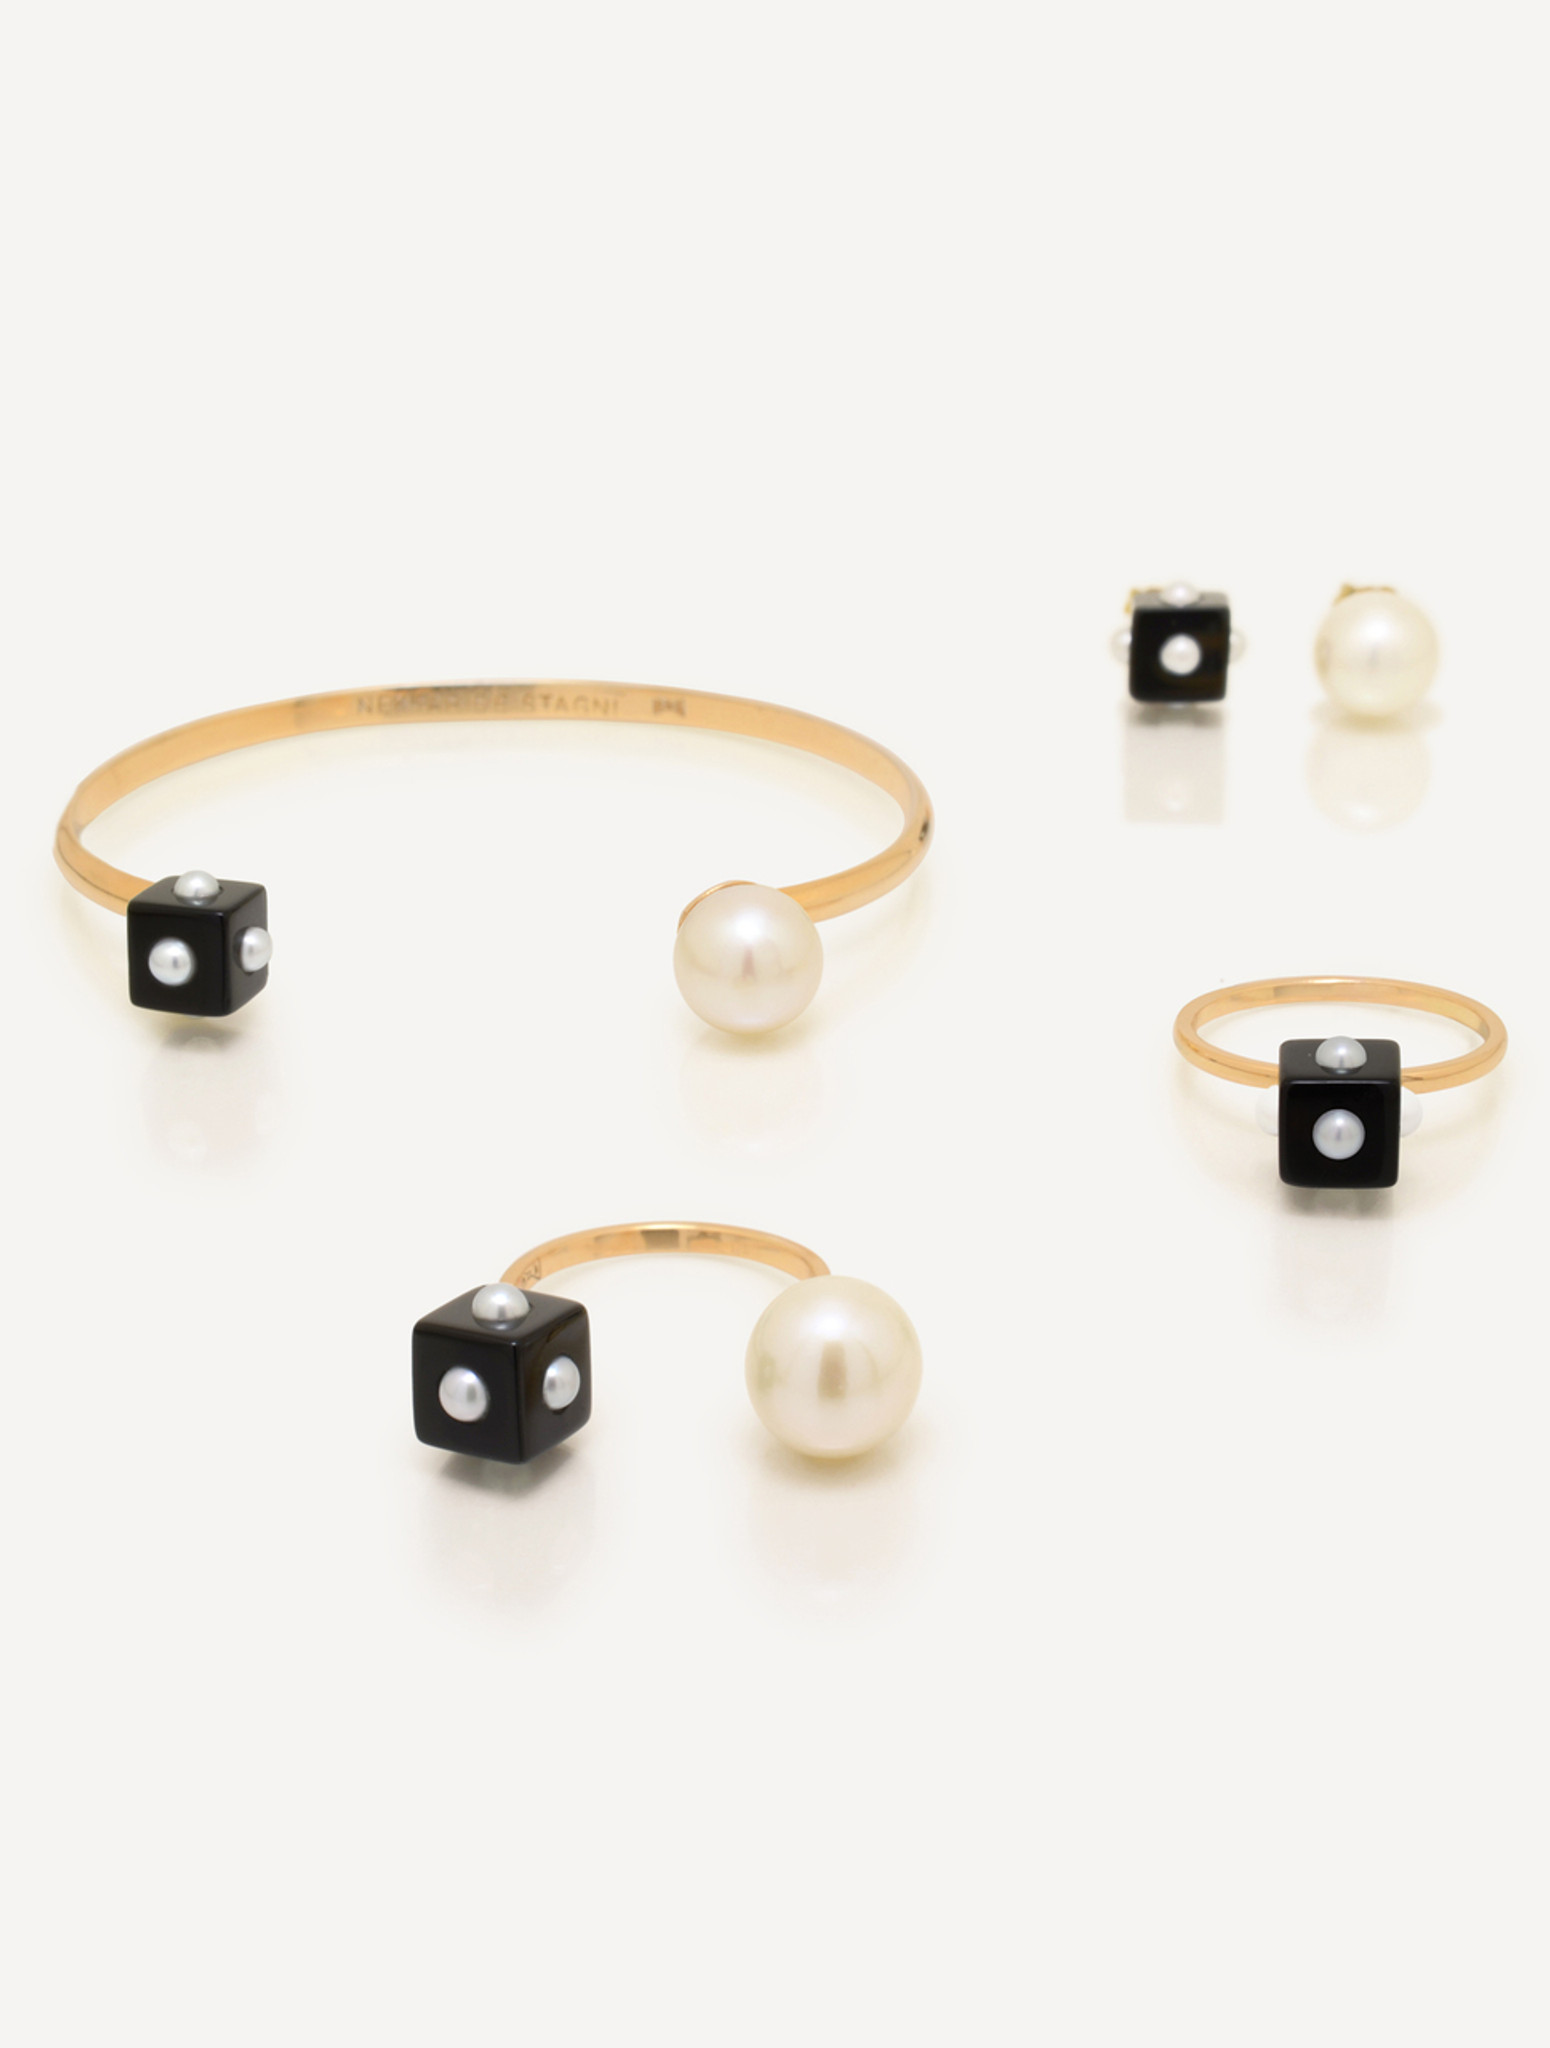 Mini Pearl Onyx Cube & Pearl Earring with 14k Gold Post by Jewelry Designer Nektar De Stagni (8-9 mm)